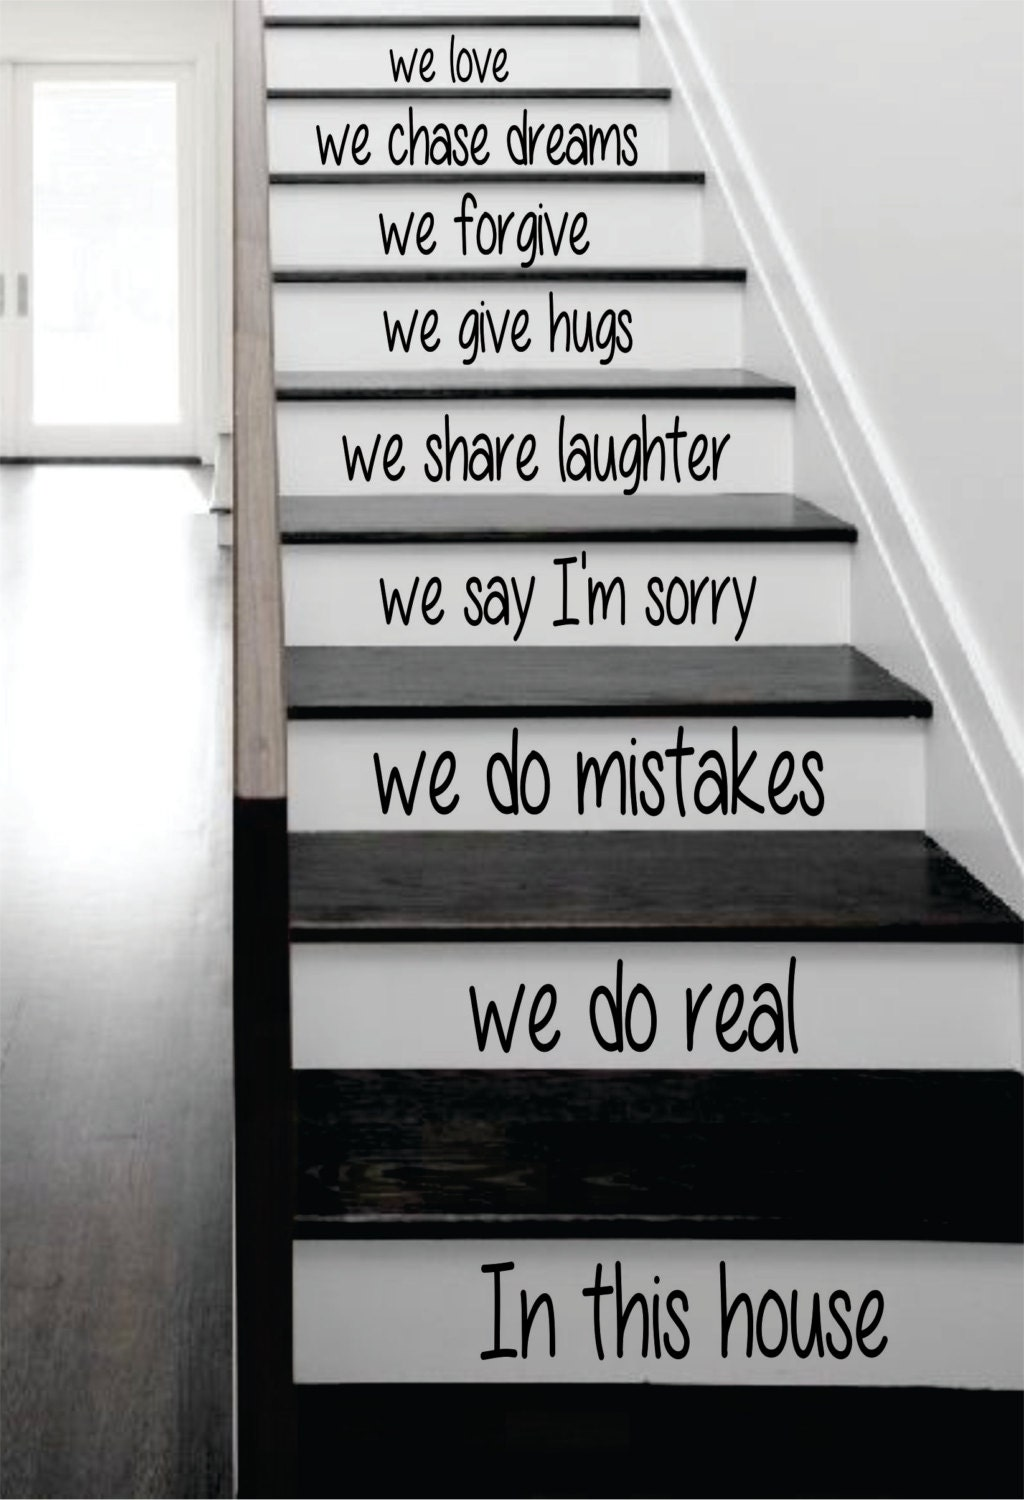 in this house stairs decal sticker wall vinyl art by boopdecals. Black Bedroom Furniture Sets. Home Design Ideas